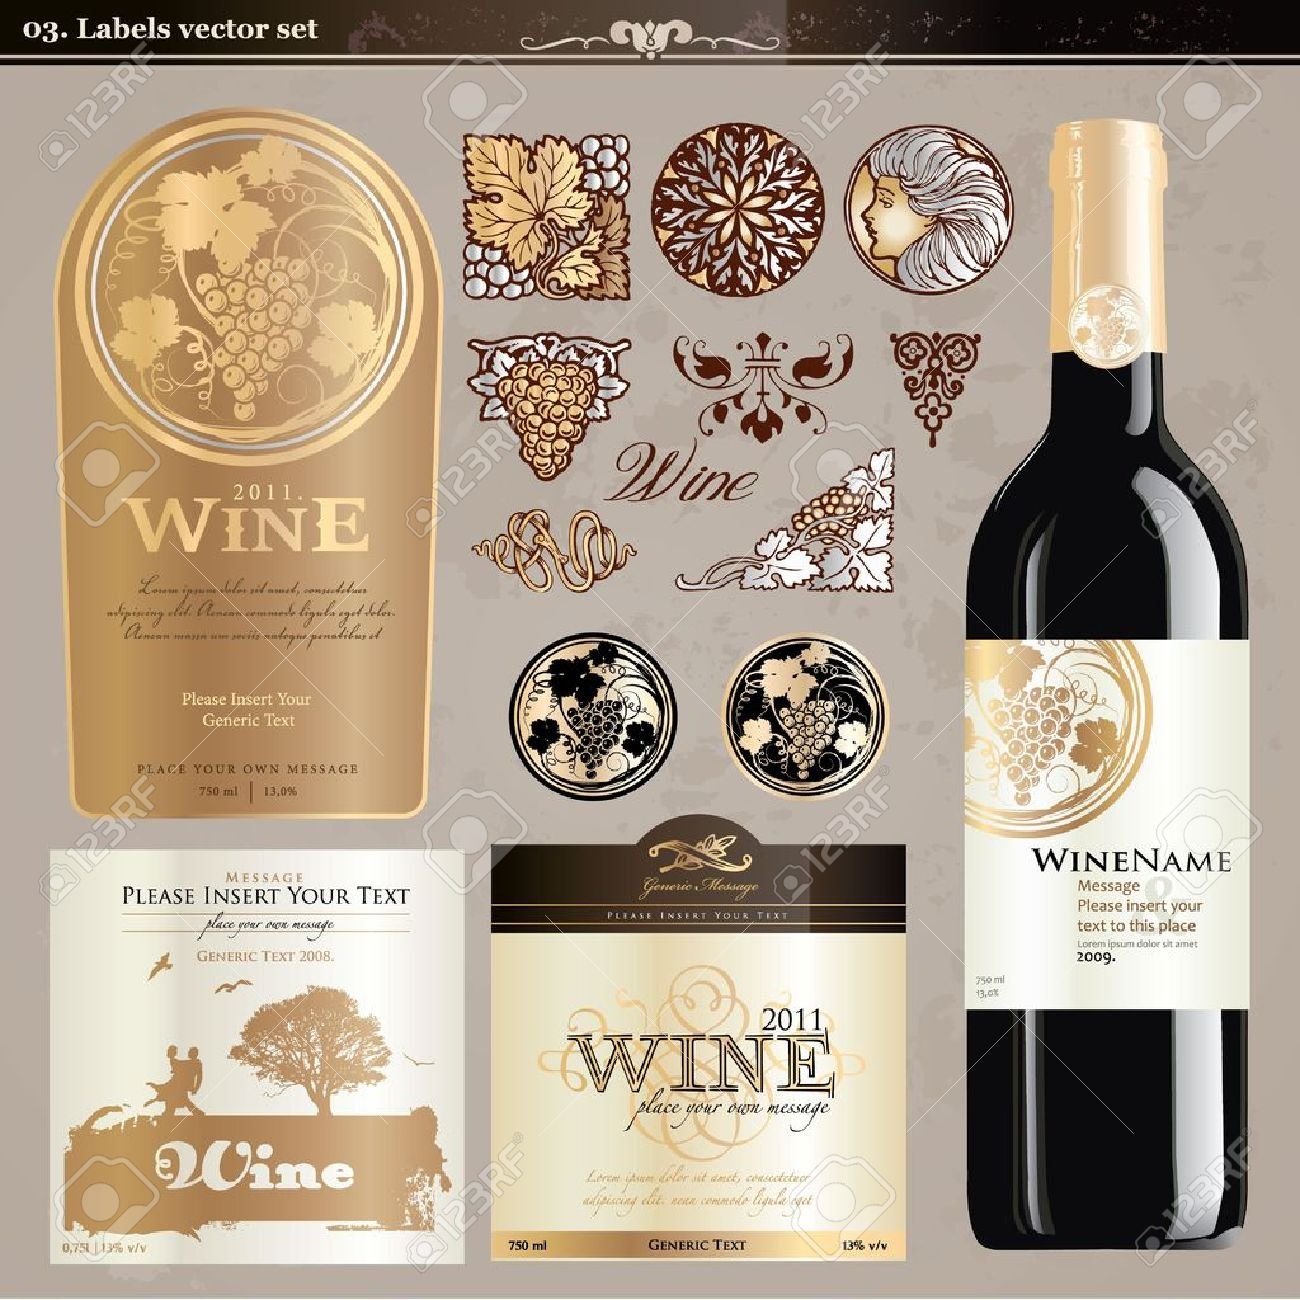 Wine Labels Set Royalty Free Cliparts Vectors And – Wine Bottle Labels Template Free